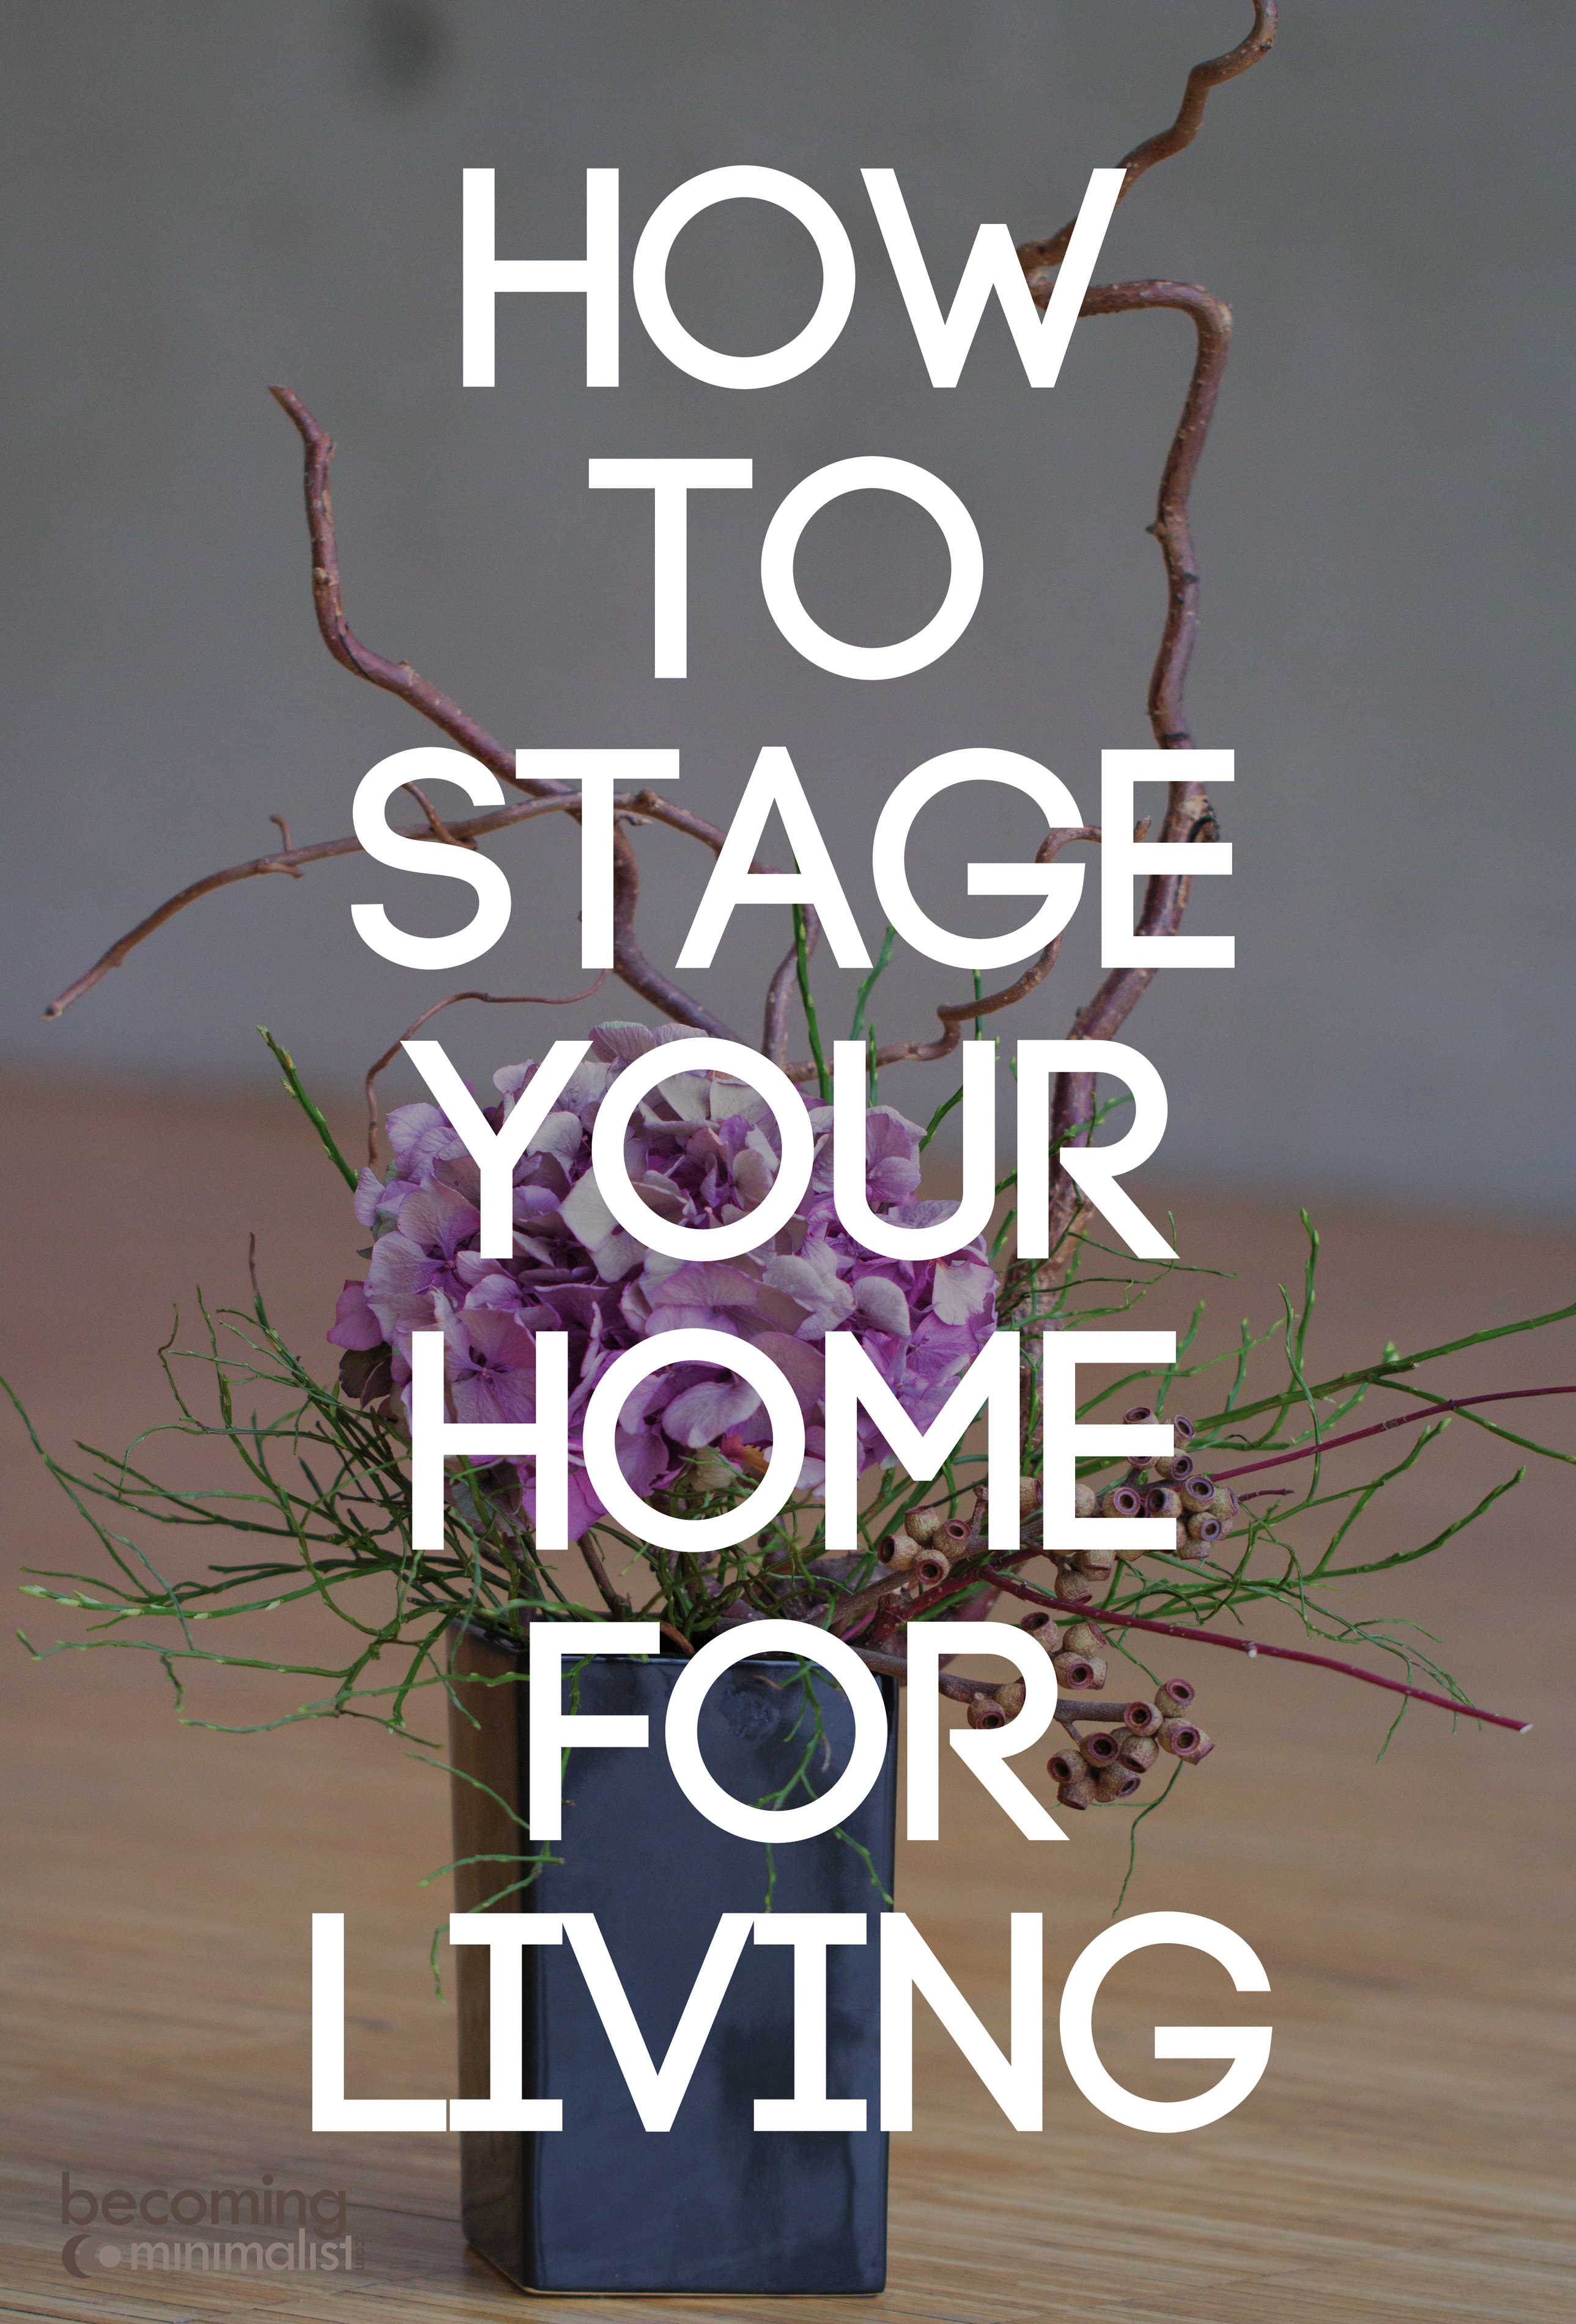 How to stage your home for living for Becoming minimalist home